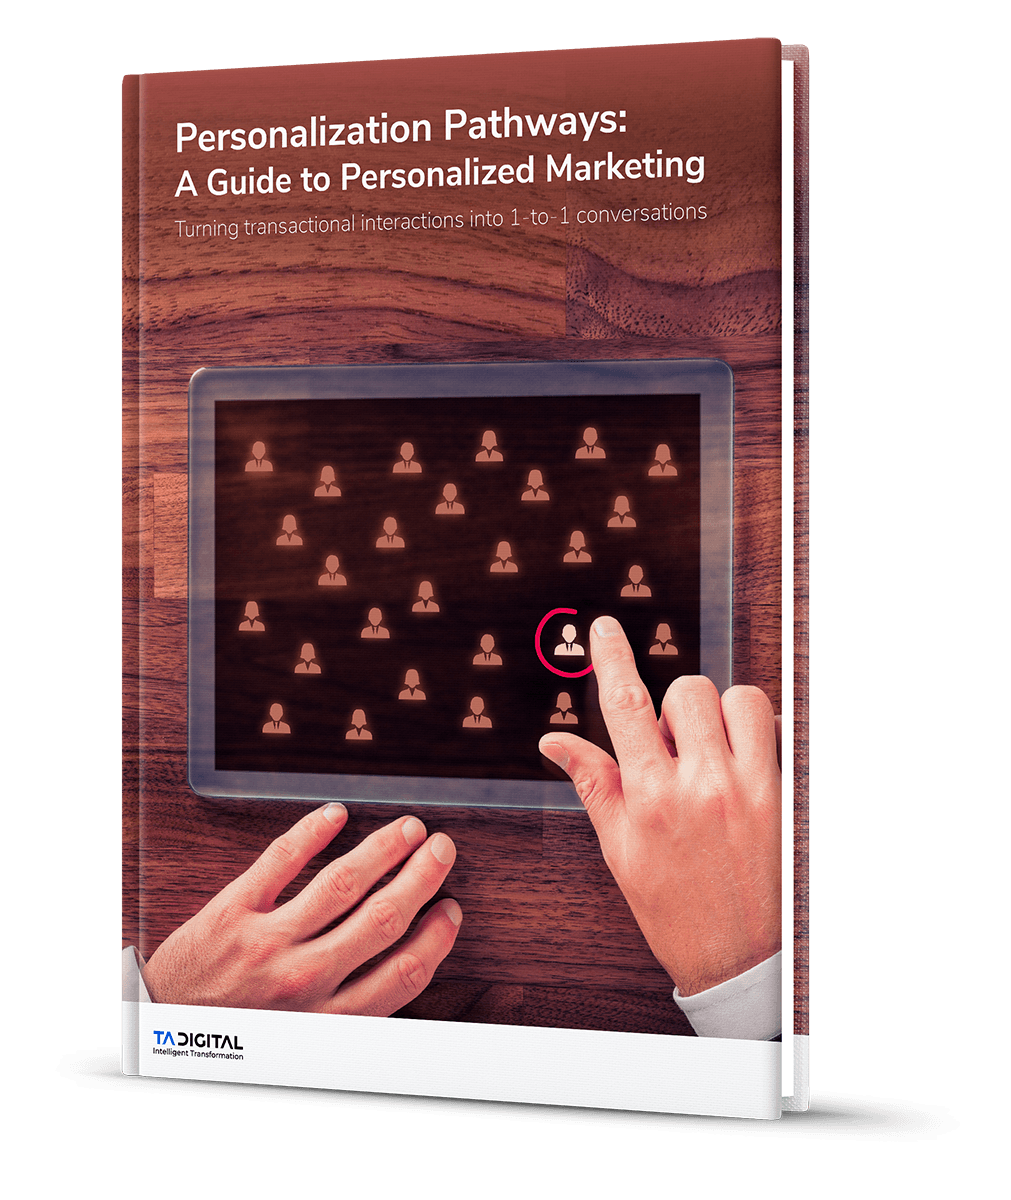 Personalization Pathways: A Guide to Personalized Marketing